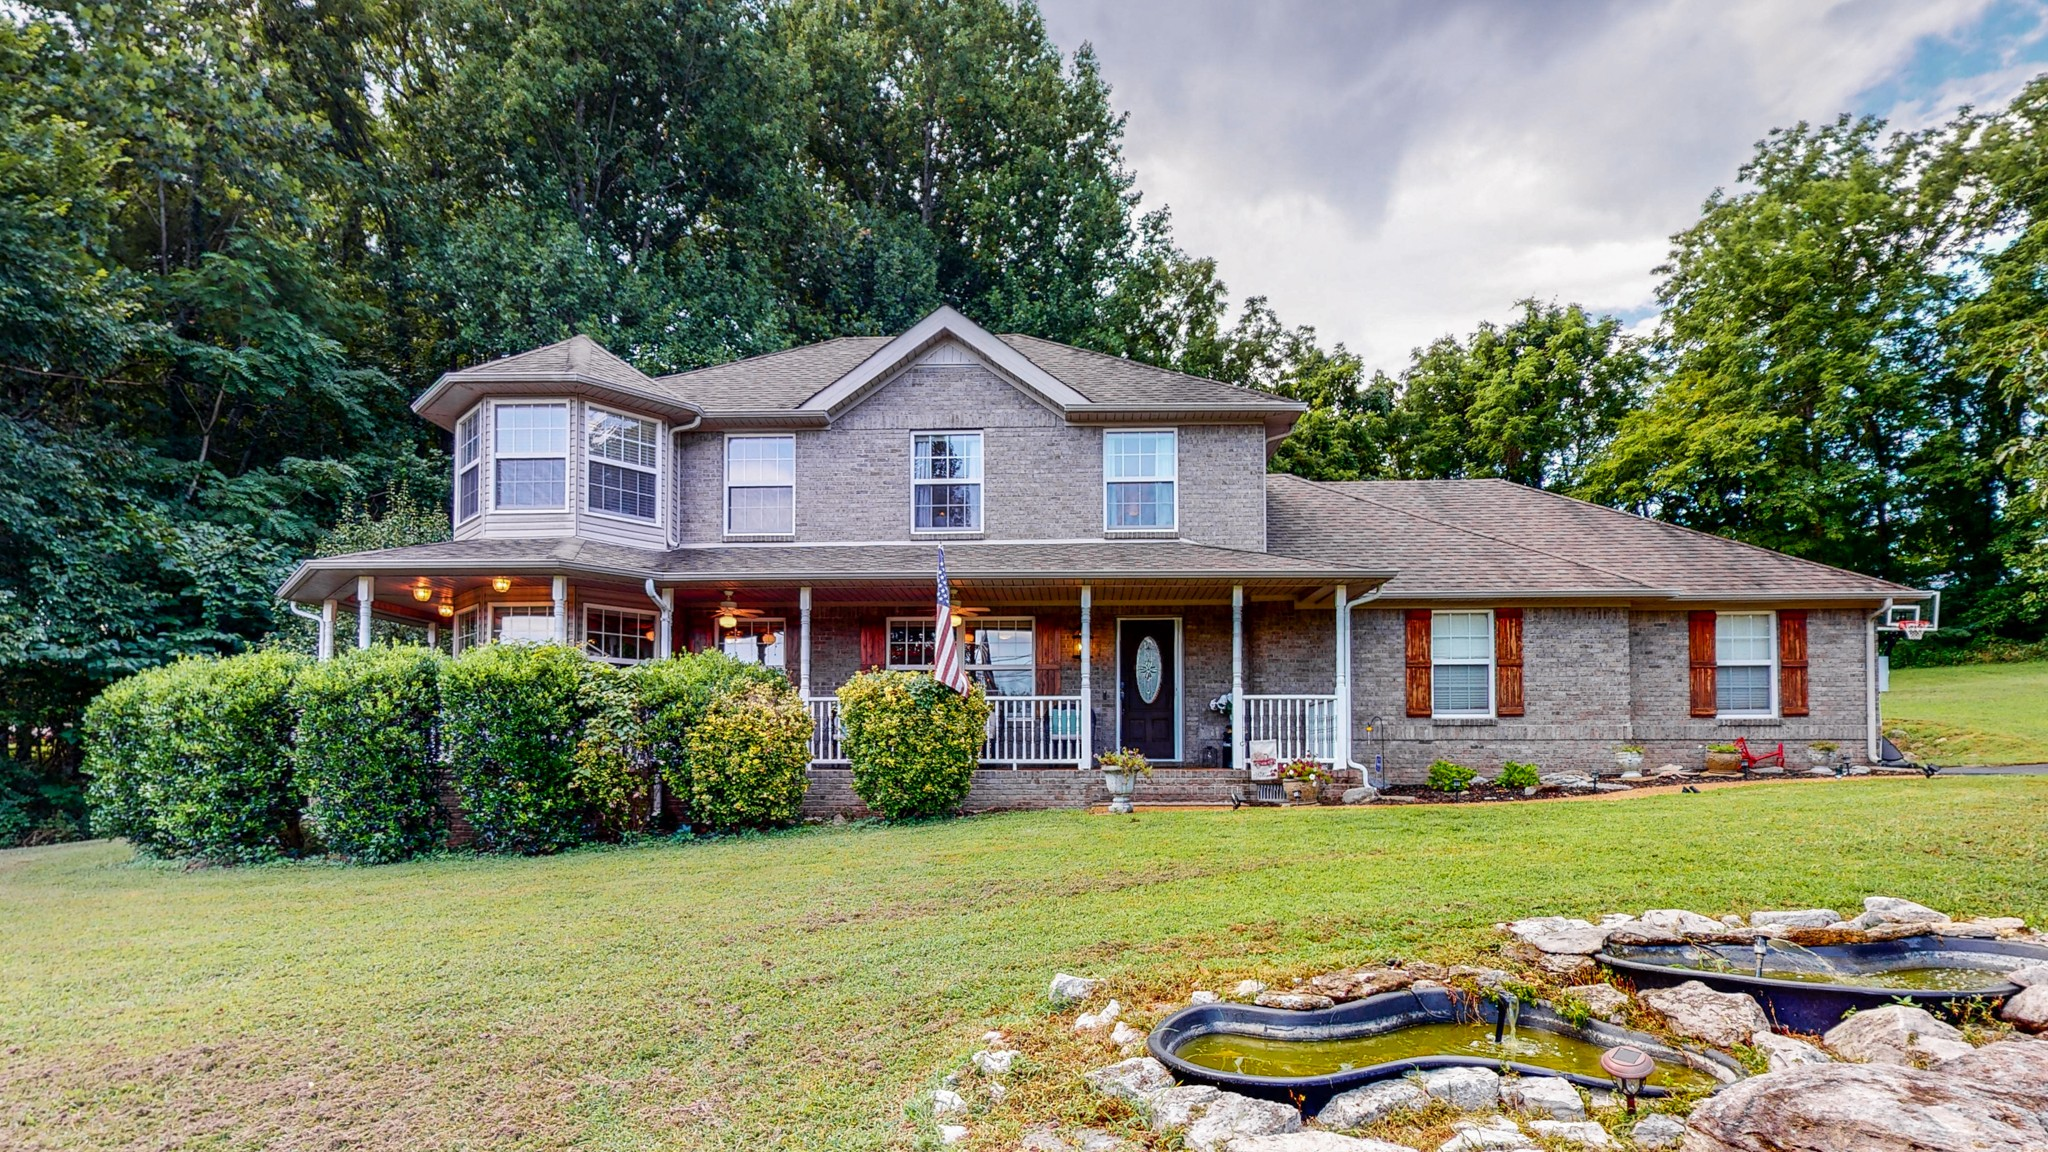 Beautiful 4 Bedroom, 3.5 Bathroom all-brick home sits on 1.32 acres slightly slope lot in Spring Hill's Mathis Valley. Wrap around front porch, mini front yard pond. Surrounded by matured trees, fenced backyard, lots of privacy, fresh paint, hardwood floors, granite counter tops and screened patio.